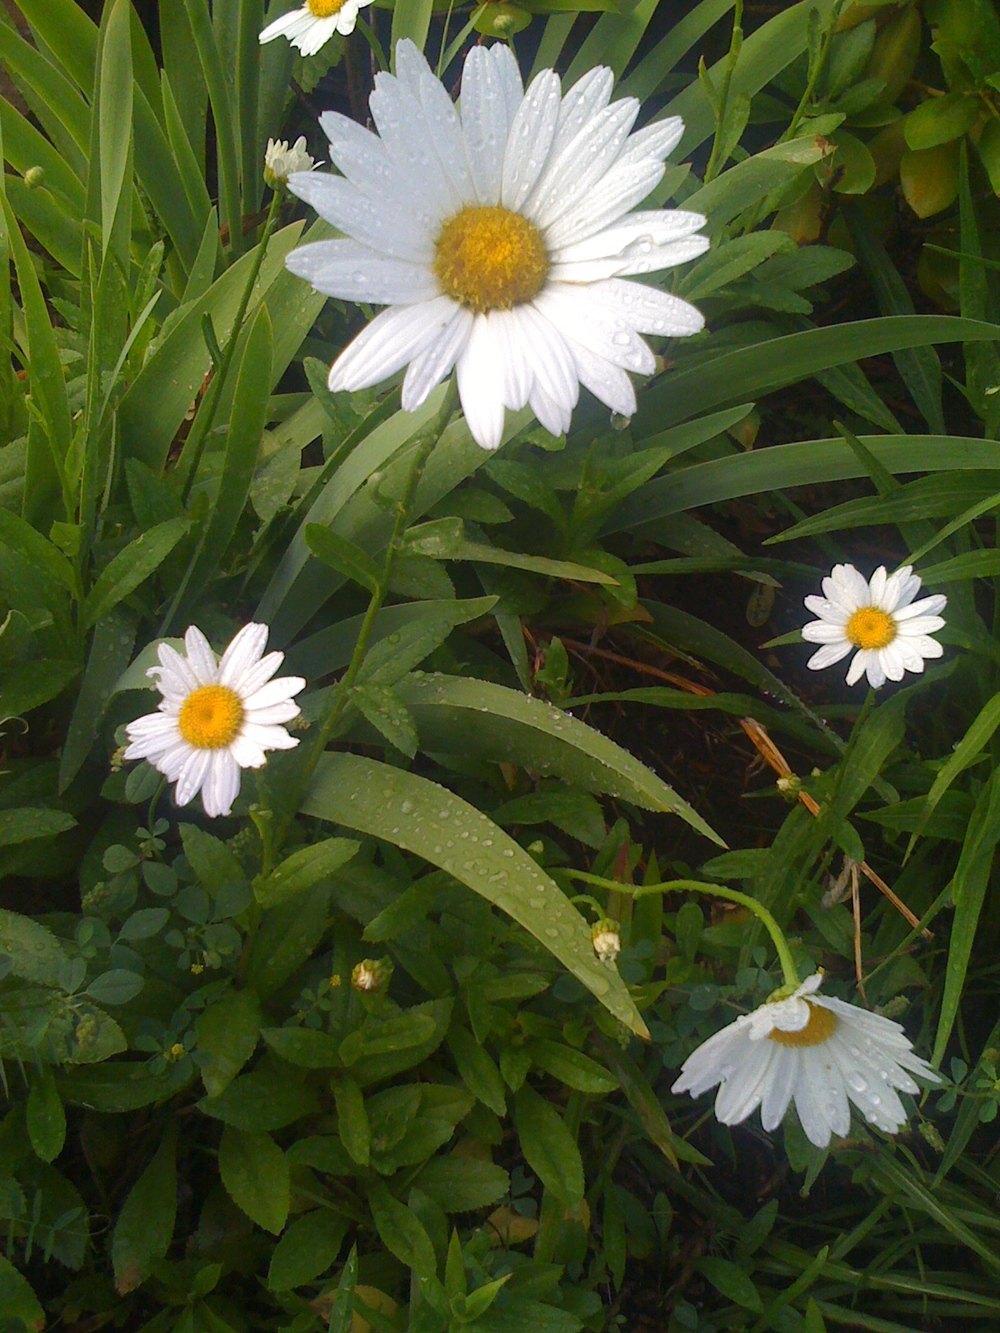 Daisies by ivy Nevares